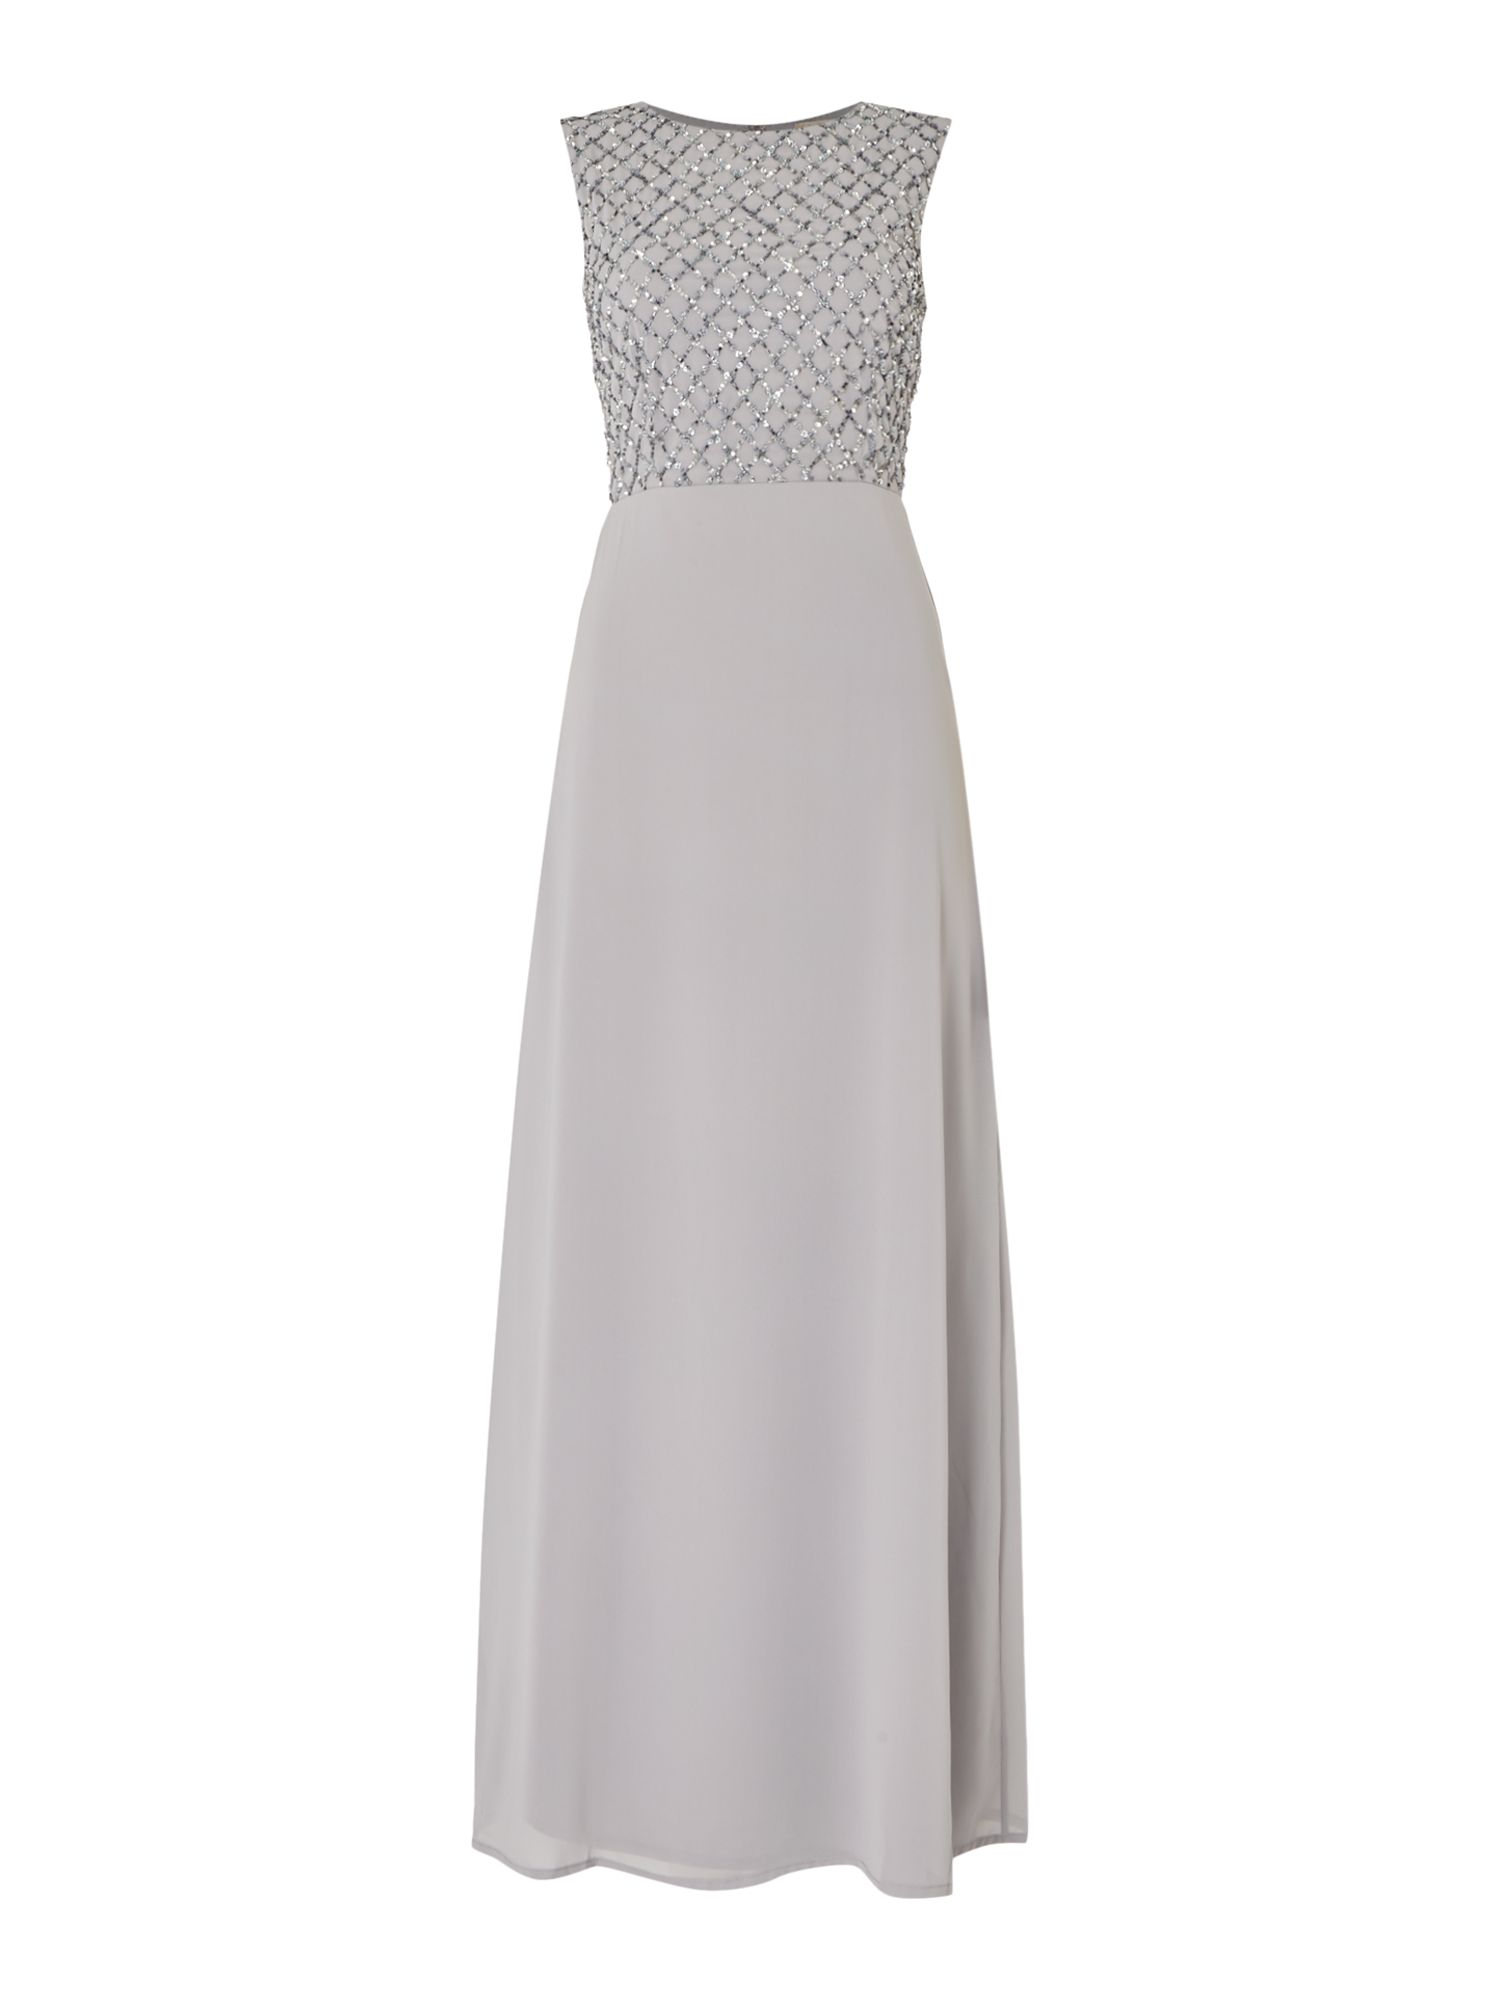 Lace and Beads Sleeveless maxi dress with sequin top, Grey